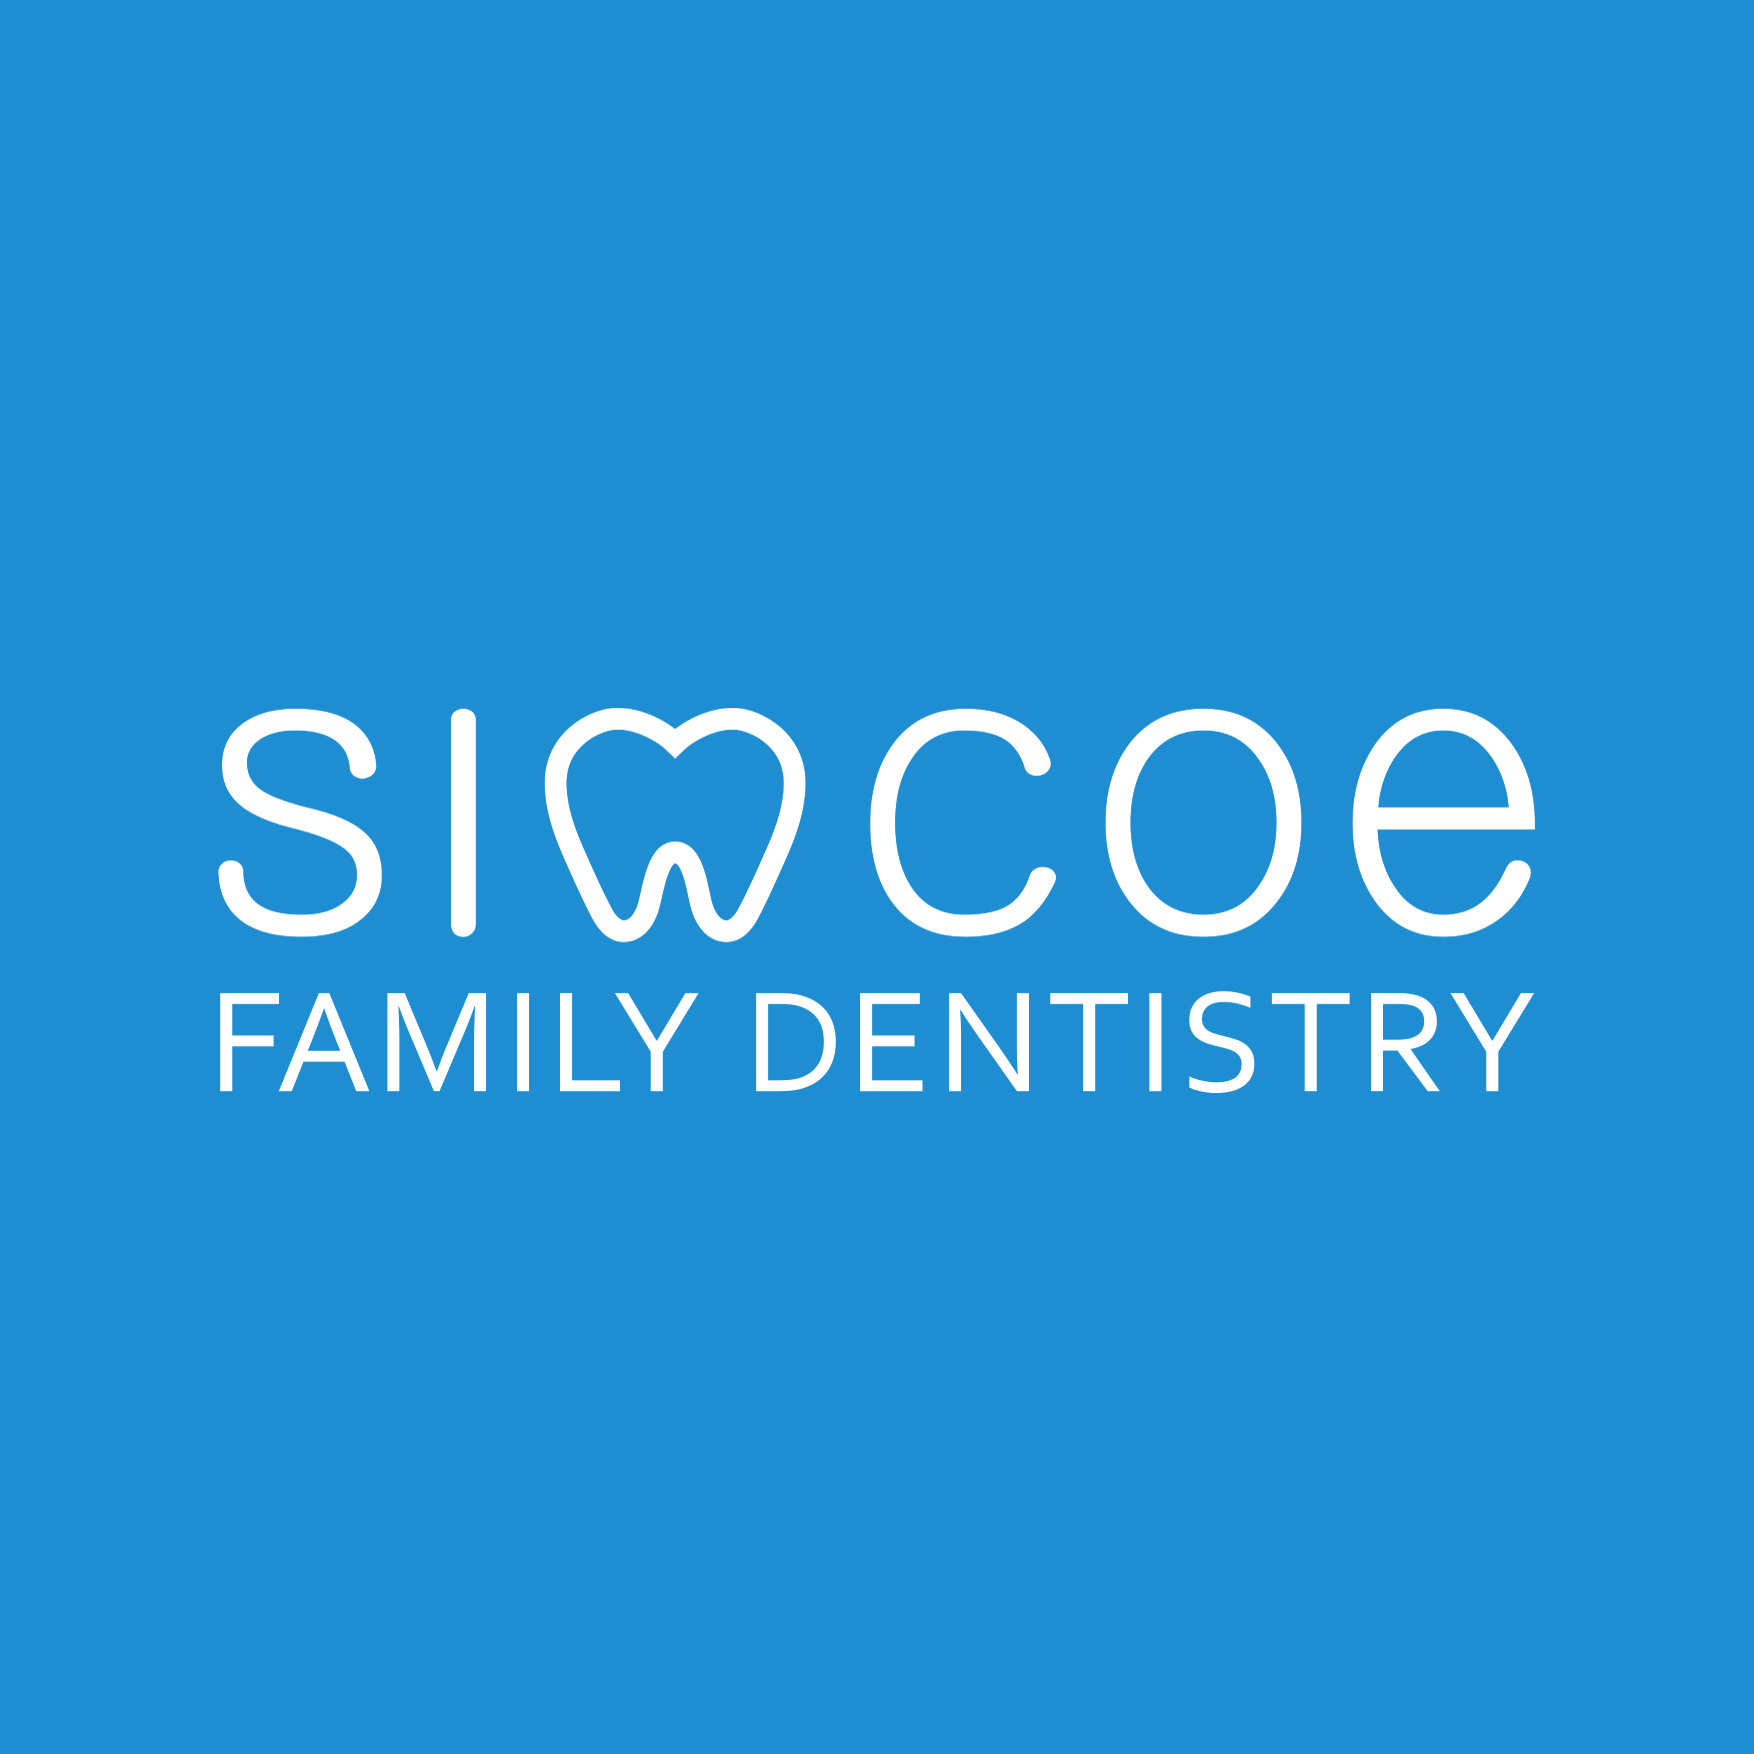 Simcoe Family Dentistry Reminds Barrie and Simcoe County Patients to Use Their Remaining Dental Benefits Before 2021